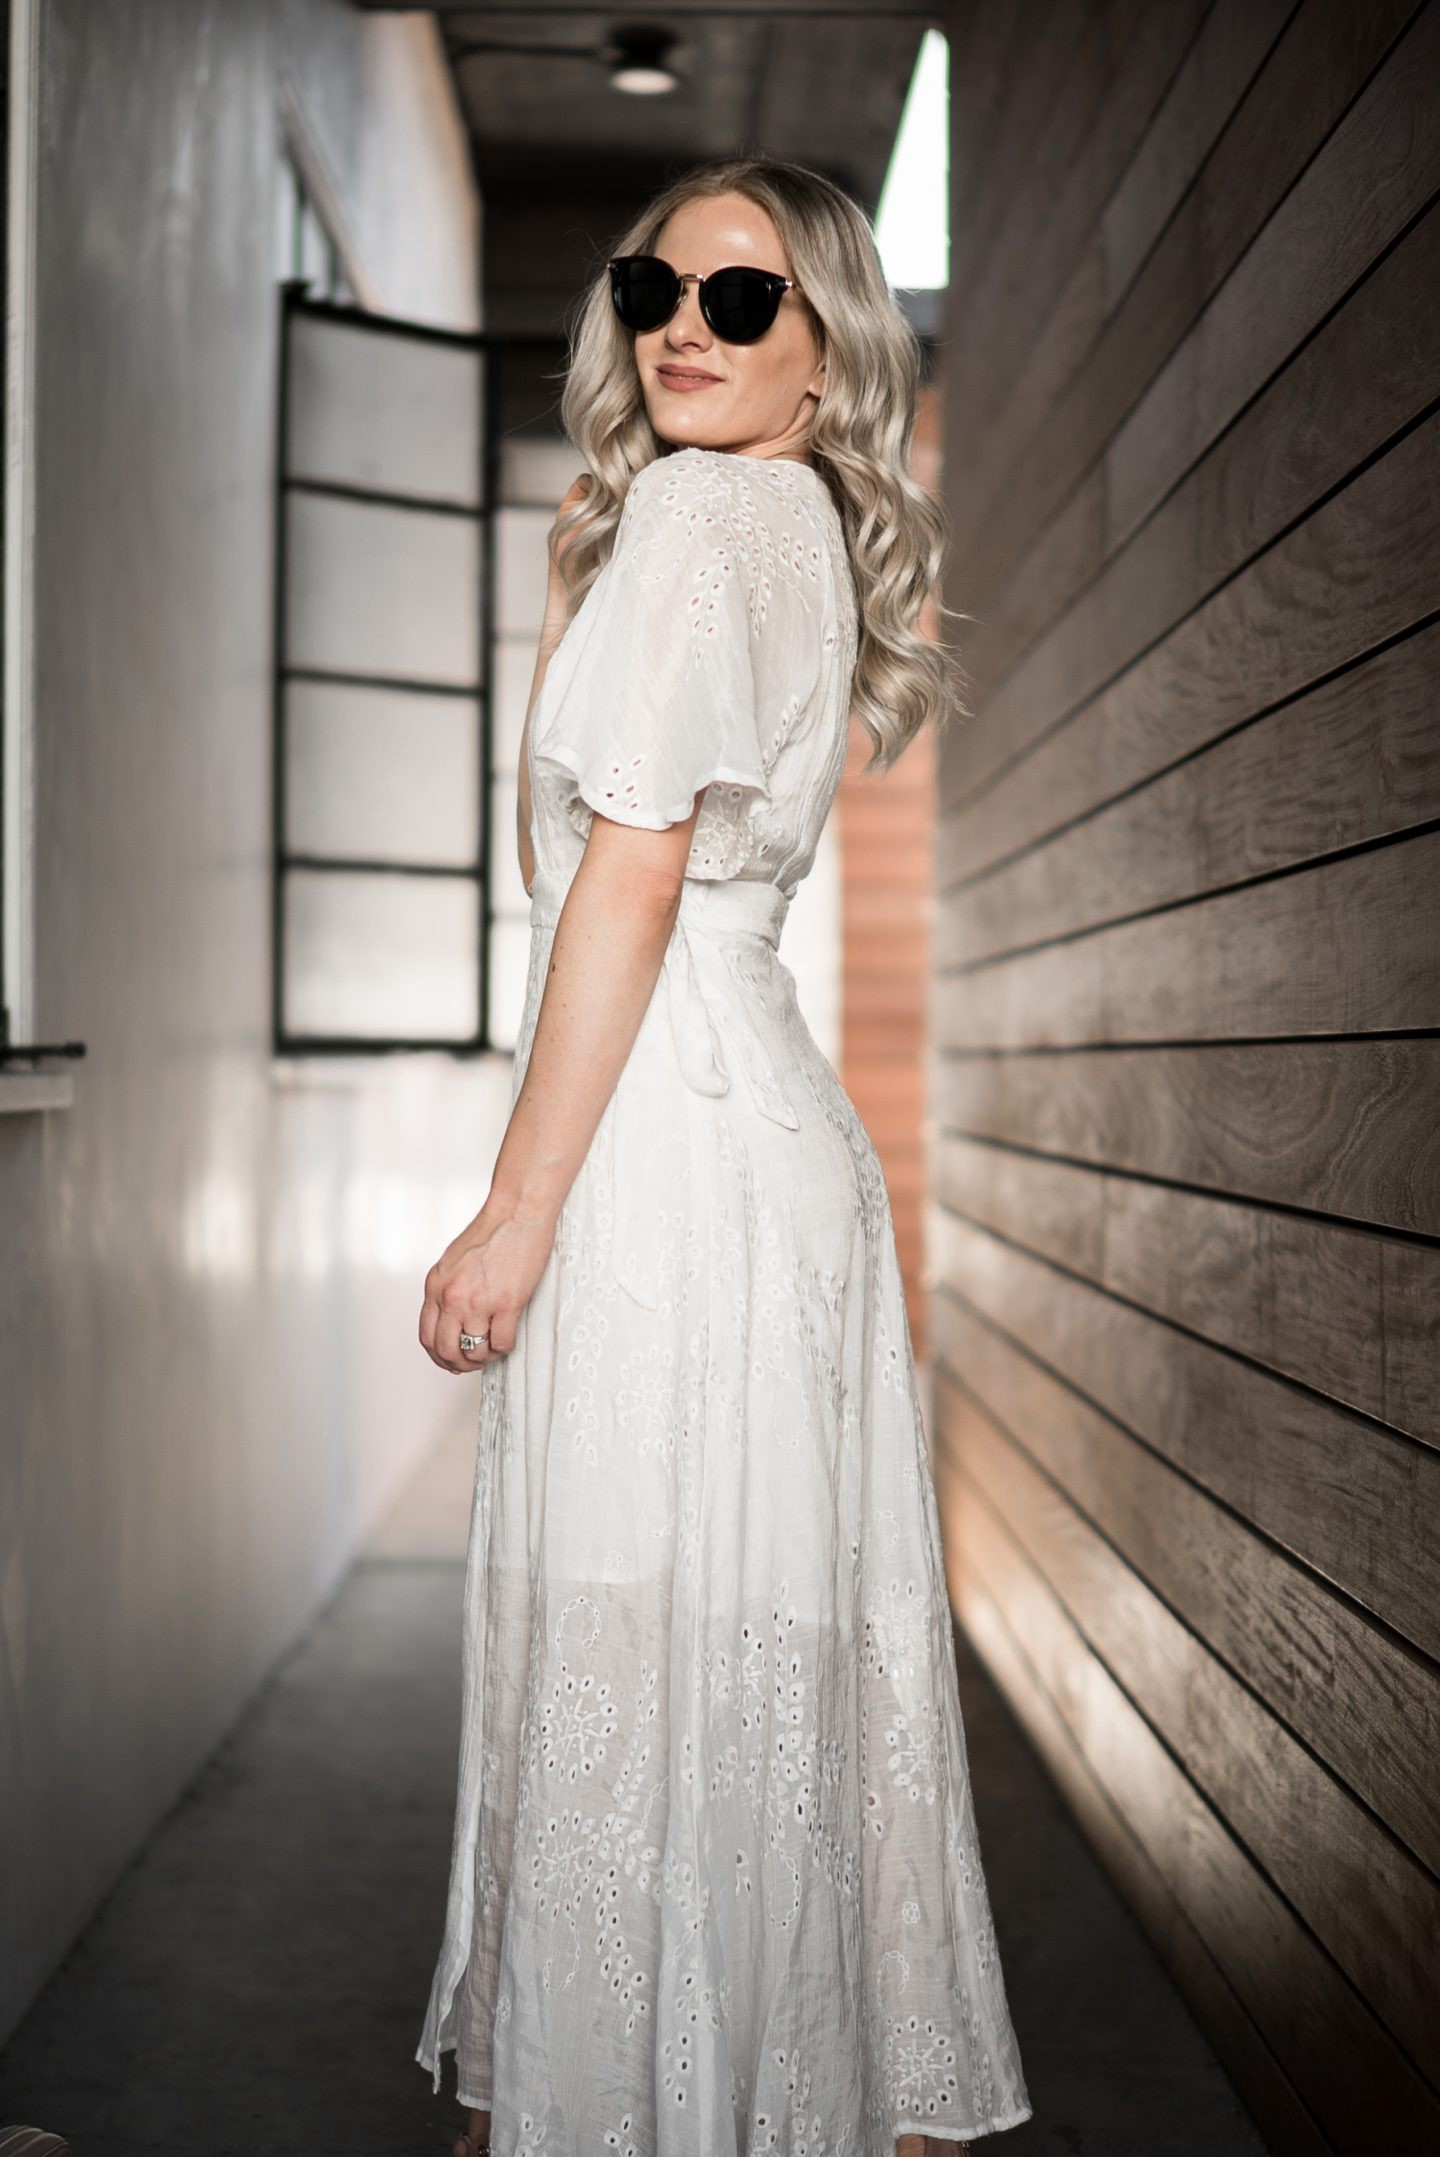 Cute White Dresses for Spring & Easter by popular Orange County fashion blogger Dress Me Blonde